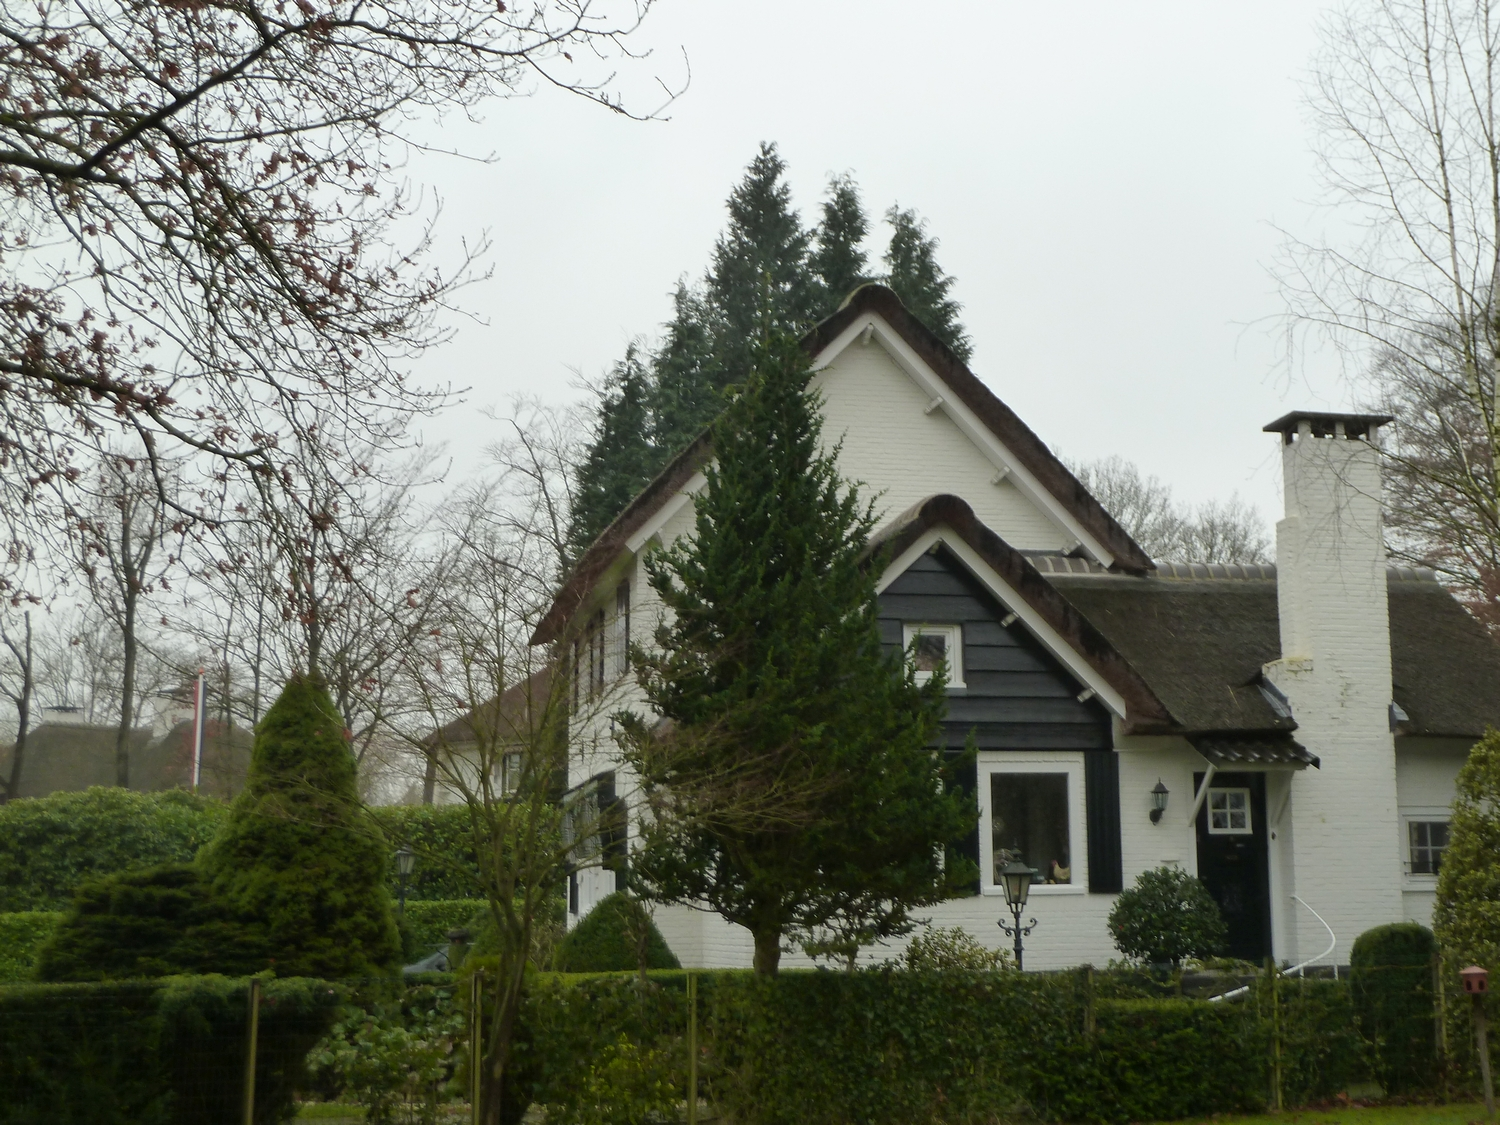 Garden and villa anex studio of N.V. Arendshoven, the construction and trading company of Bergmans and his father in law, Oisterwijk (photo: J. Bergmans, private archive Koen Visser)